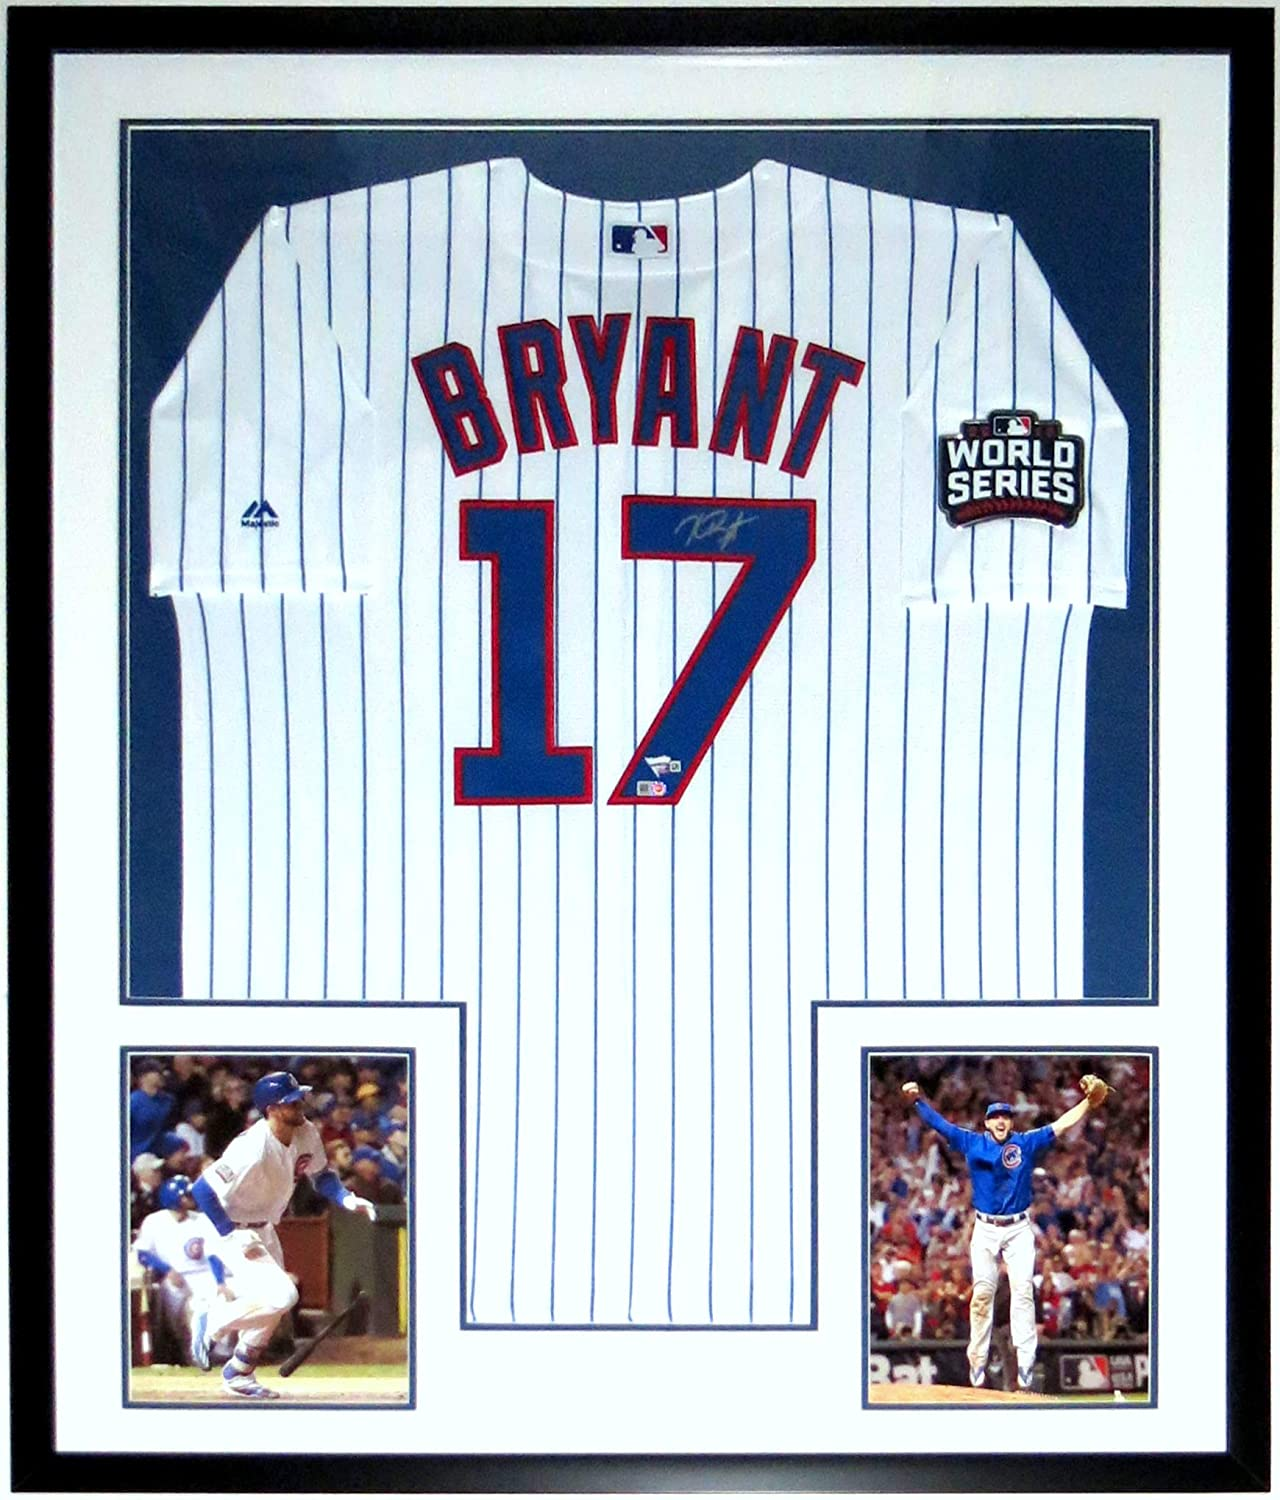 Kris Bryant Signed Chicago Cubs 2016 World Series Jersey - Fanatics   MLB  COA Authenticated - Professionally Framed   2 8x10 Photo   Patch 34x42 at  Amazon s ... 949e346c7